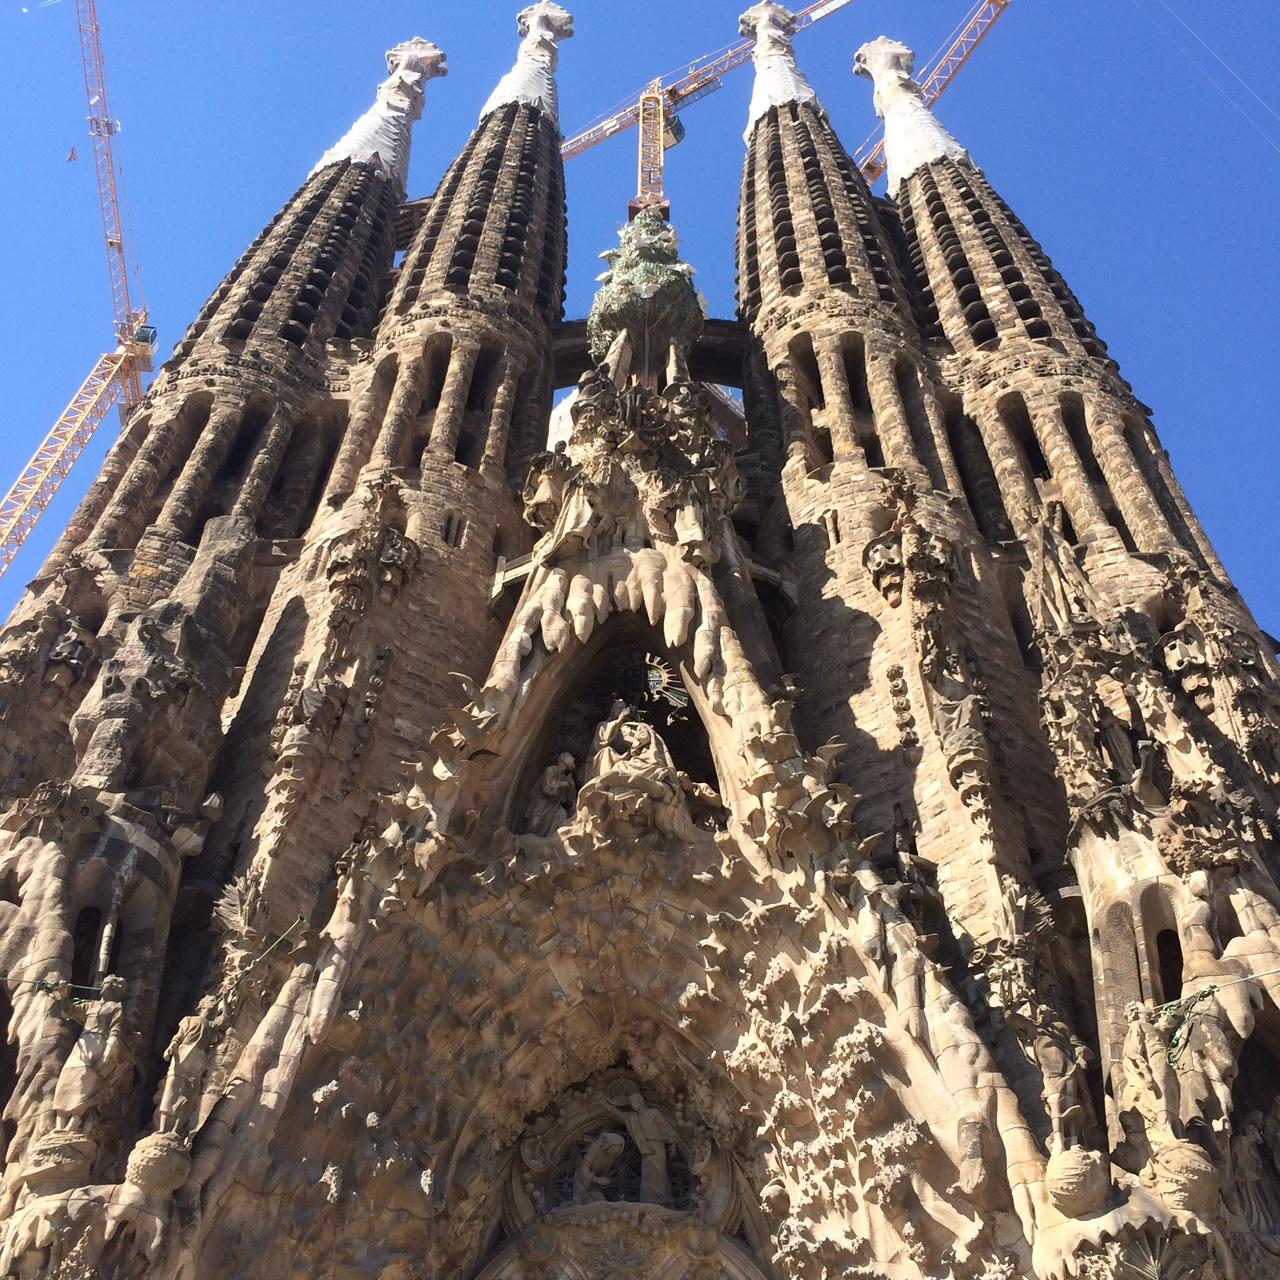 The Stunning Exterior Of Gaudis Modern Gothic La Sagrada Familia Basilica In Barcelona Spain 120 Year Old Building Is Scheduled For Completion 10